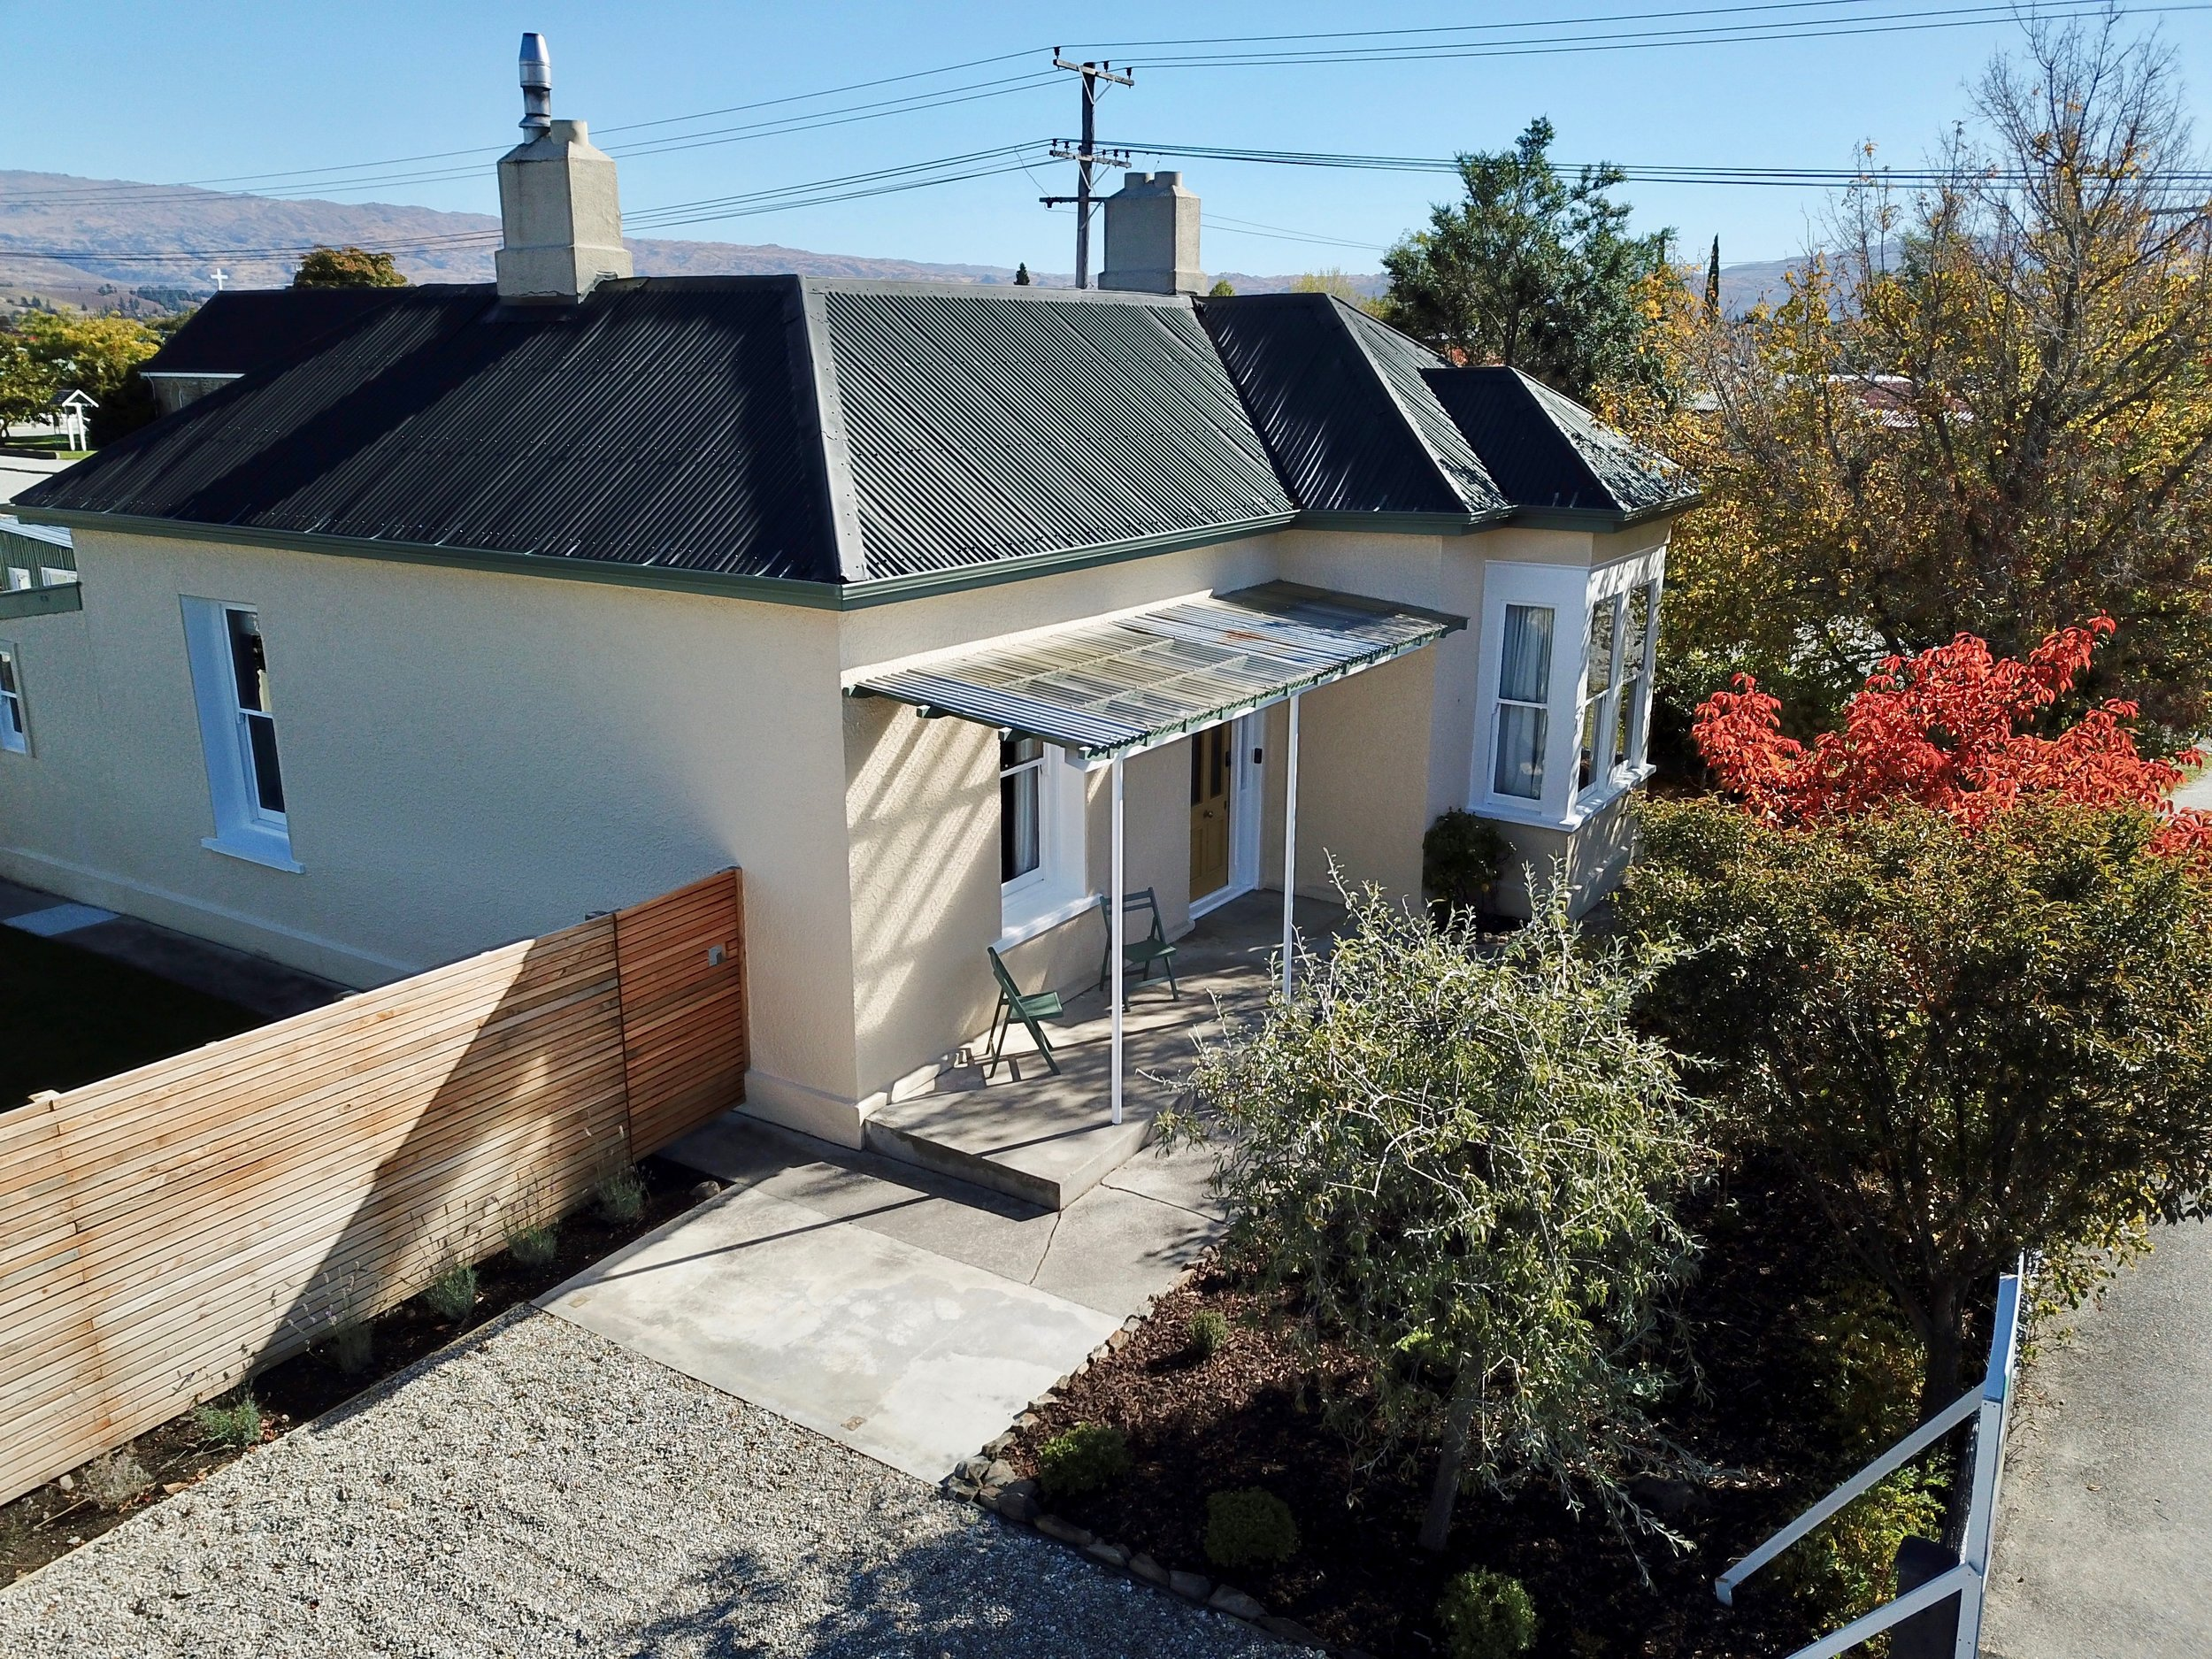 Exterior Room Reveal Pearson and Projects Charmer in Alexandra Alice and Caleb - 36.jpg